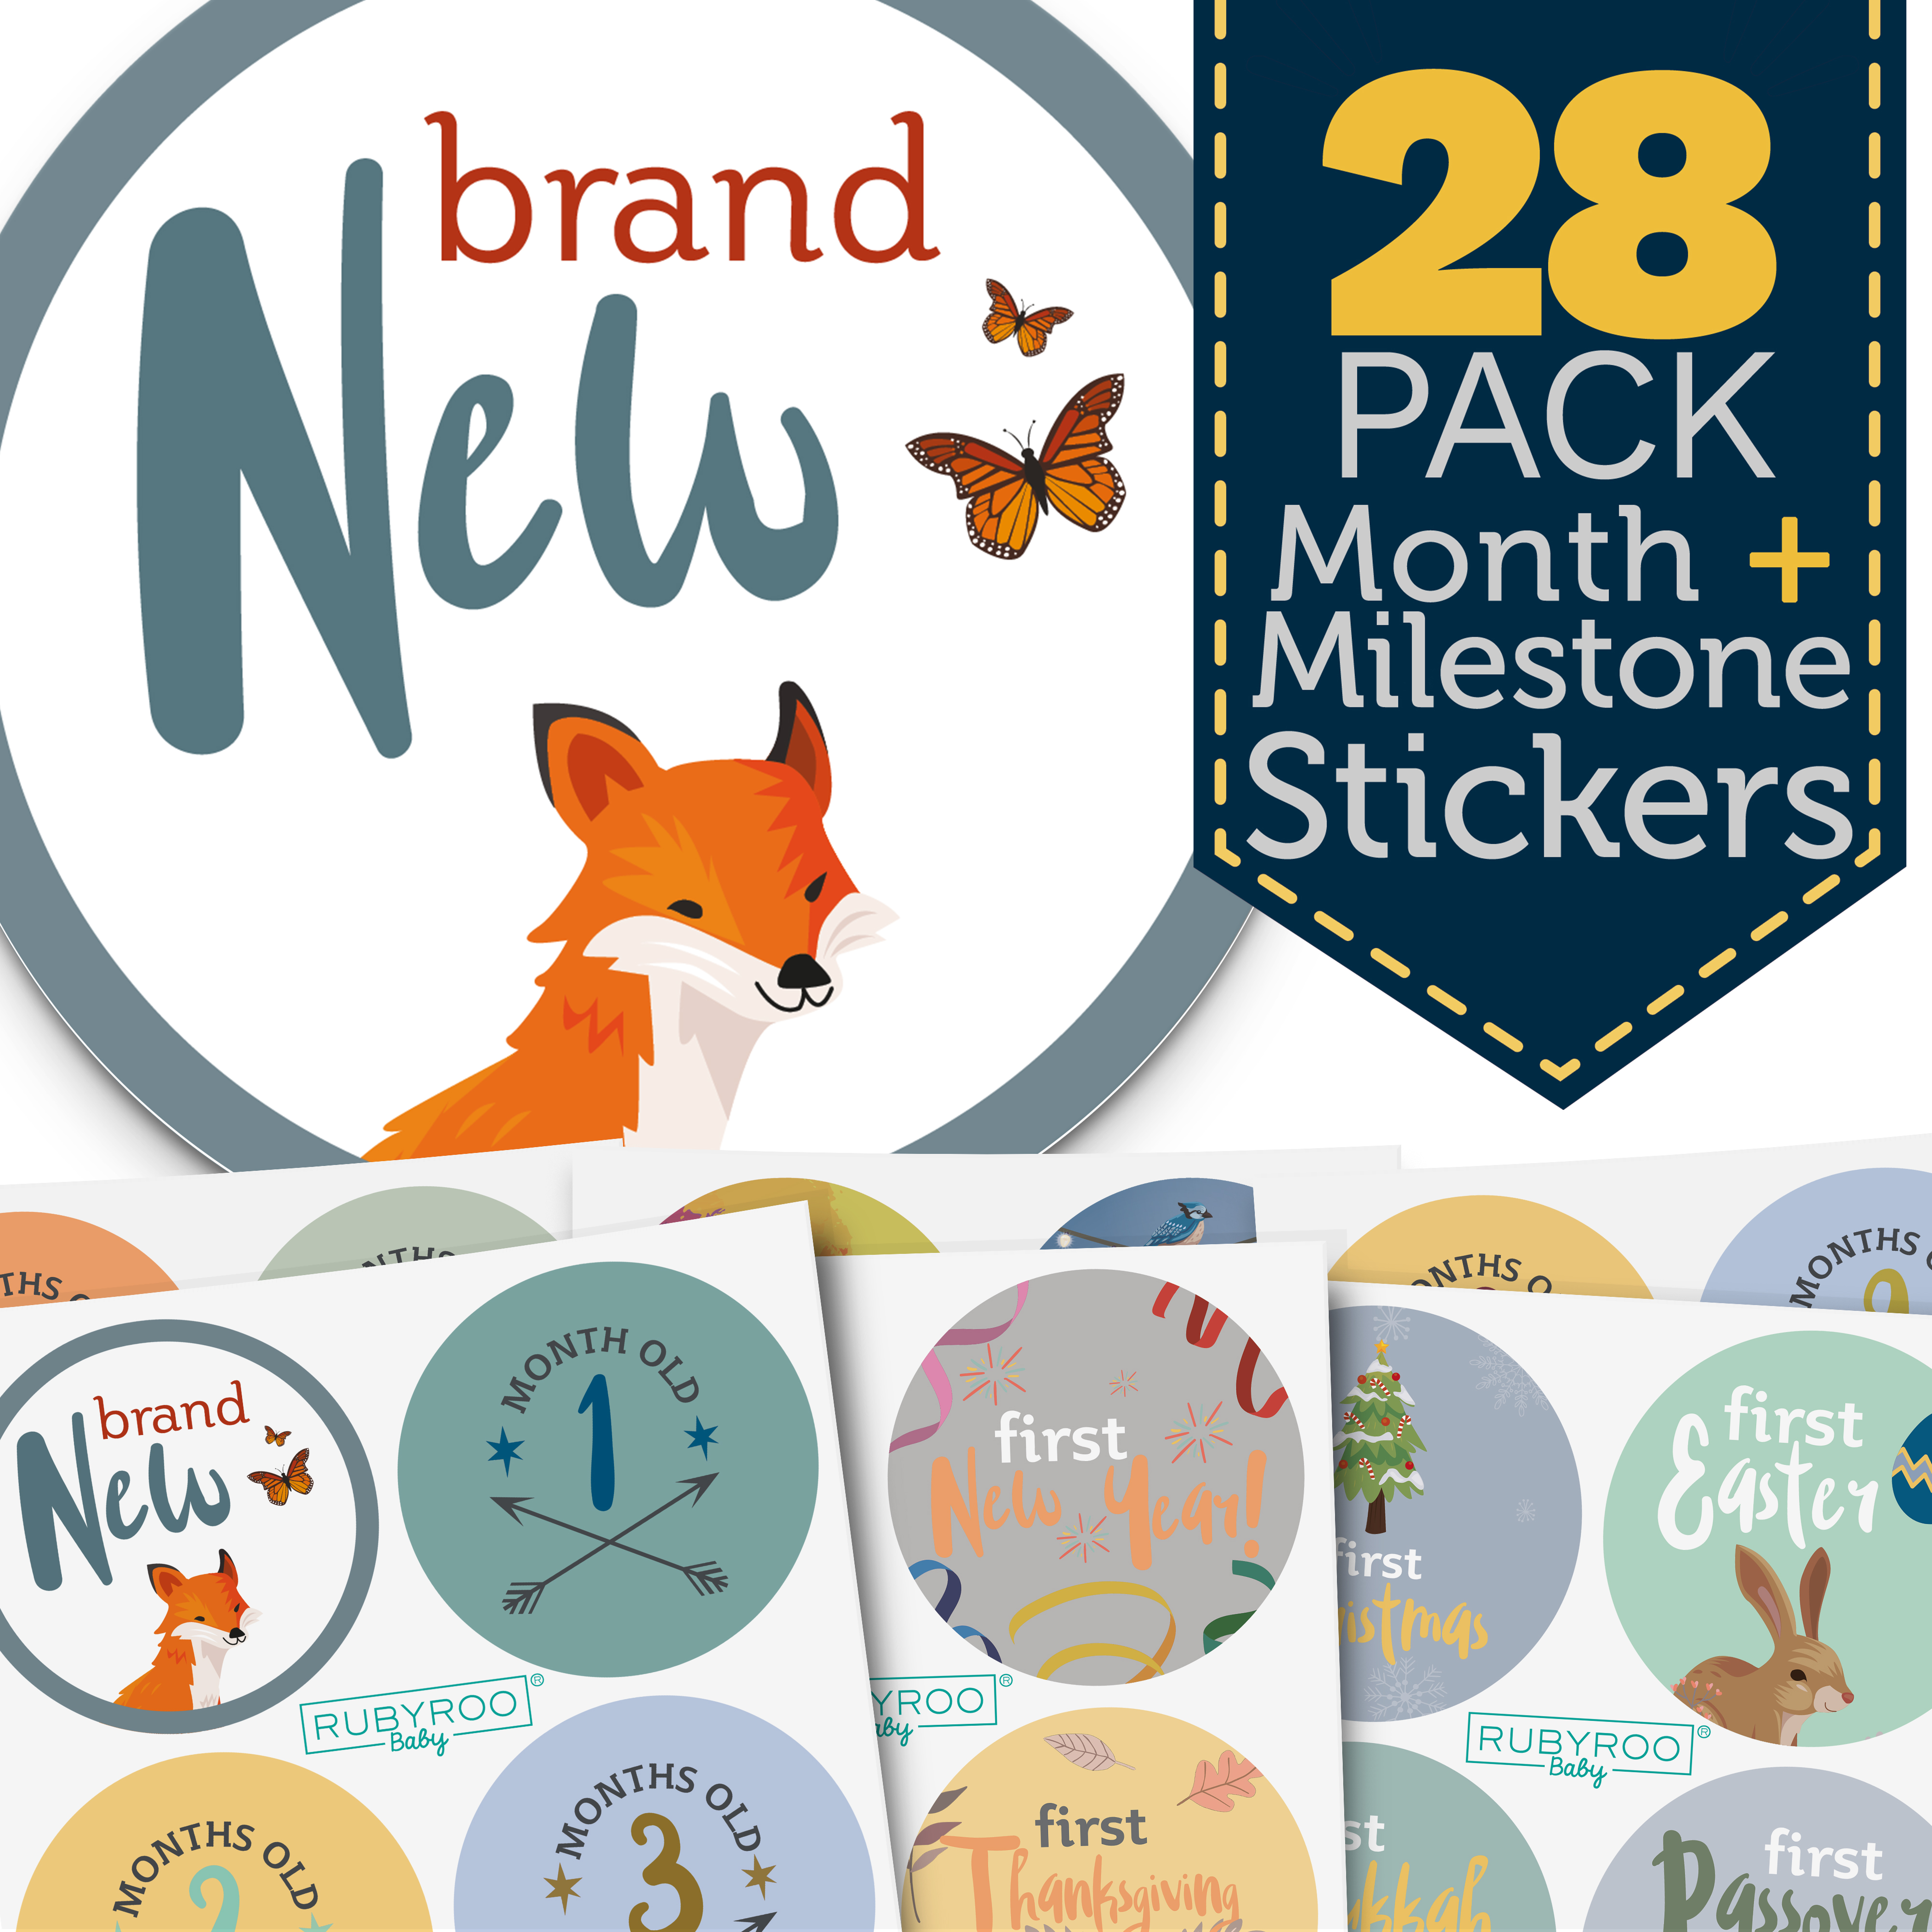 Monthly Baby Stickers - 28 Milestone Pack of Baby Boy Onesie Belly Stickers. Includes 12 months, 1st year milestones & first holidays. Perfect baby shower & newborn birthday gift. (Woodland)